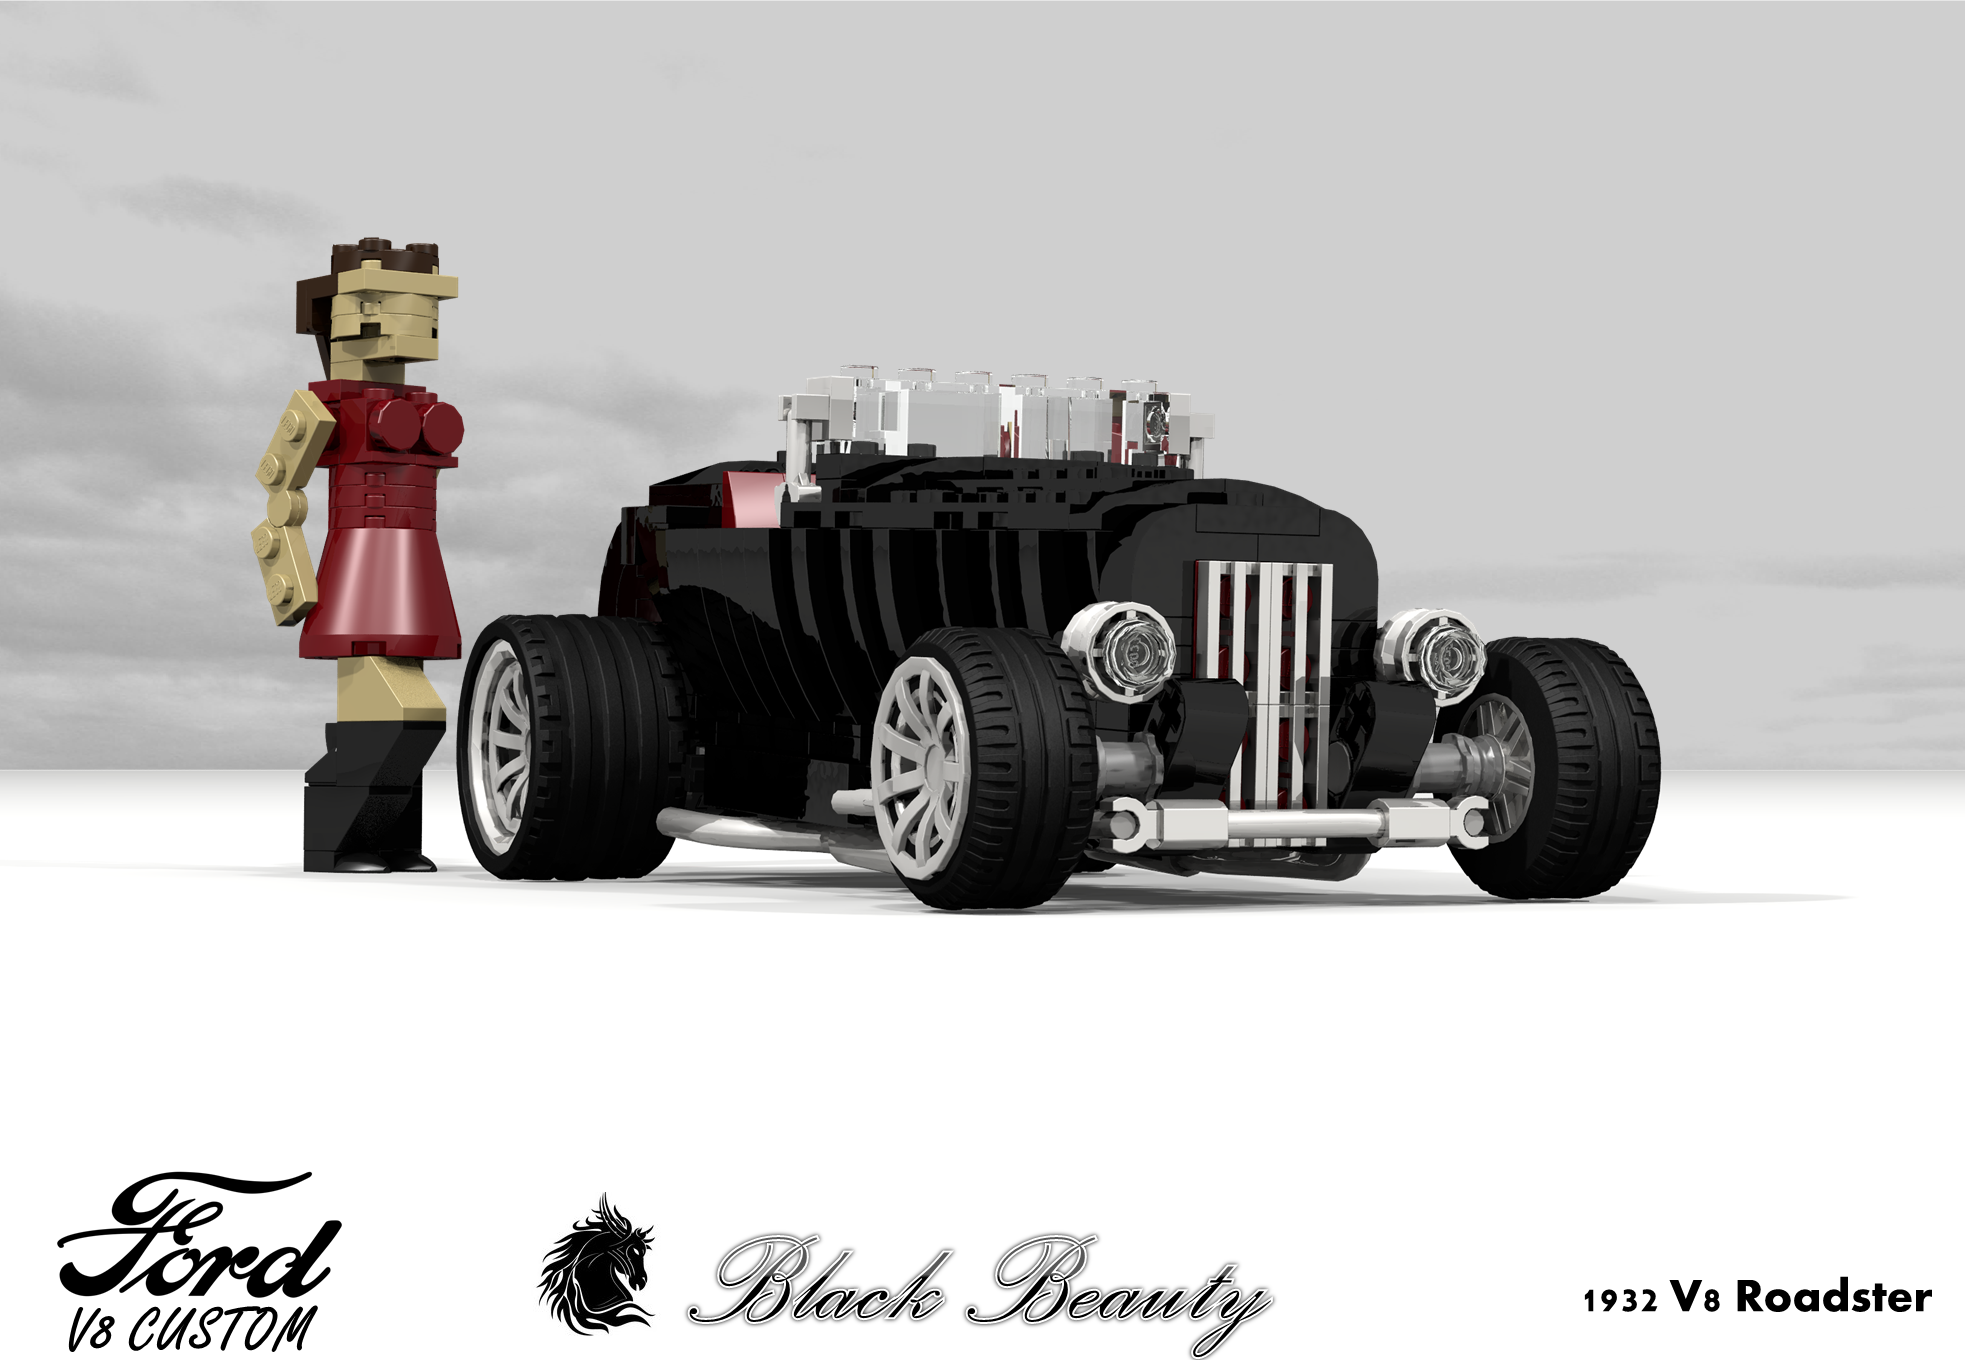 ford_1932_custom_roadster_-_black_beauty_07.png